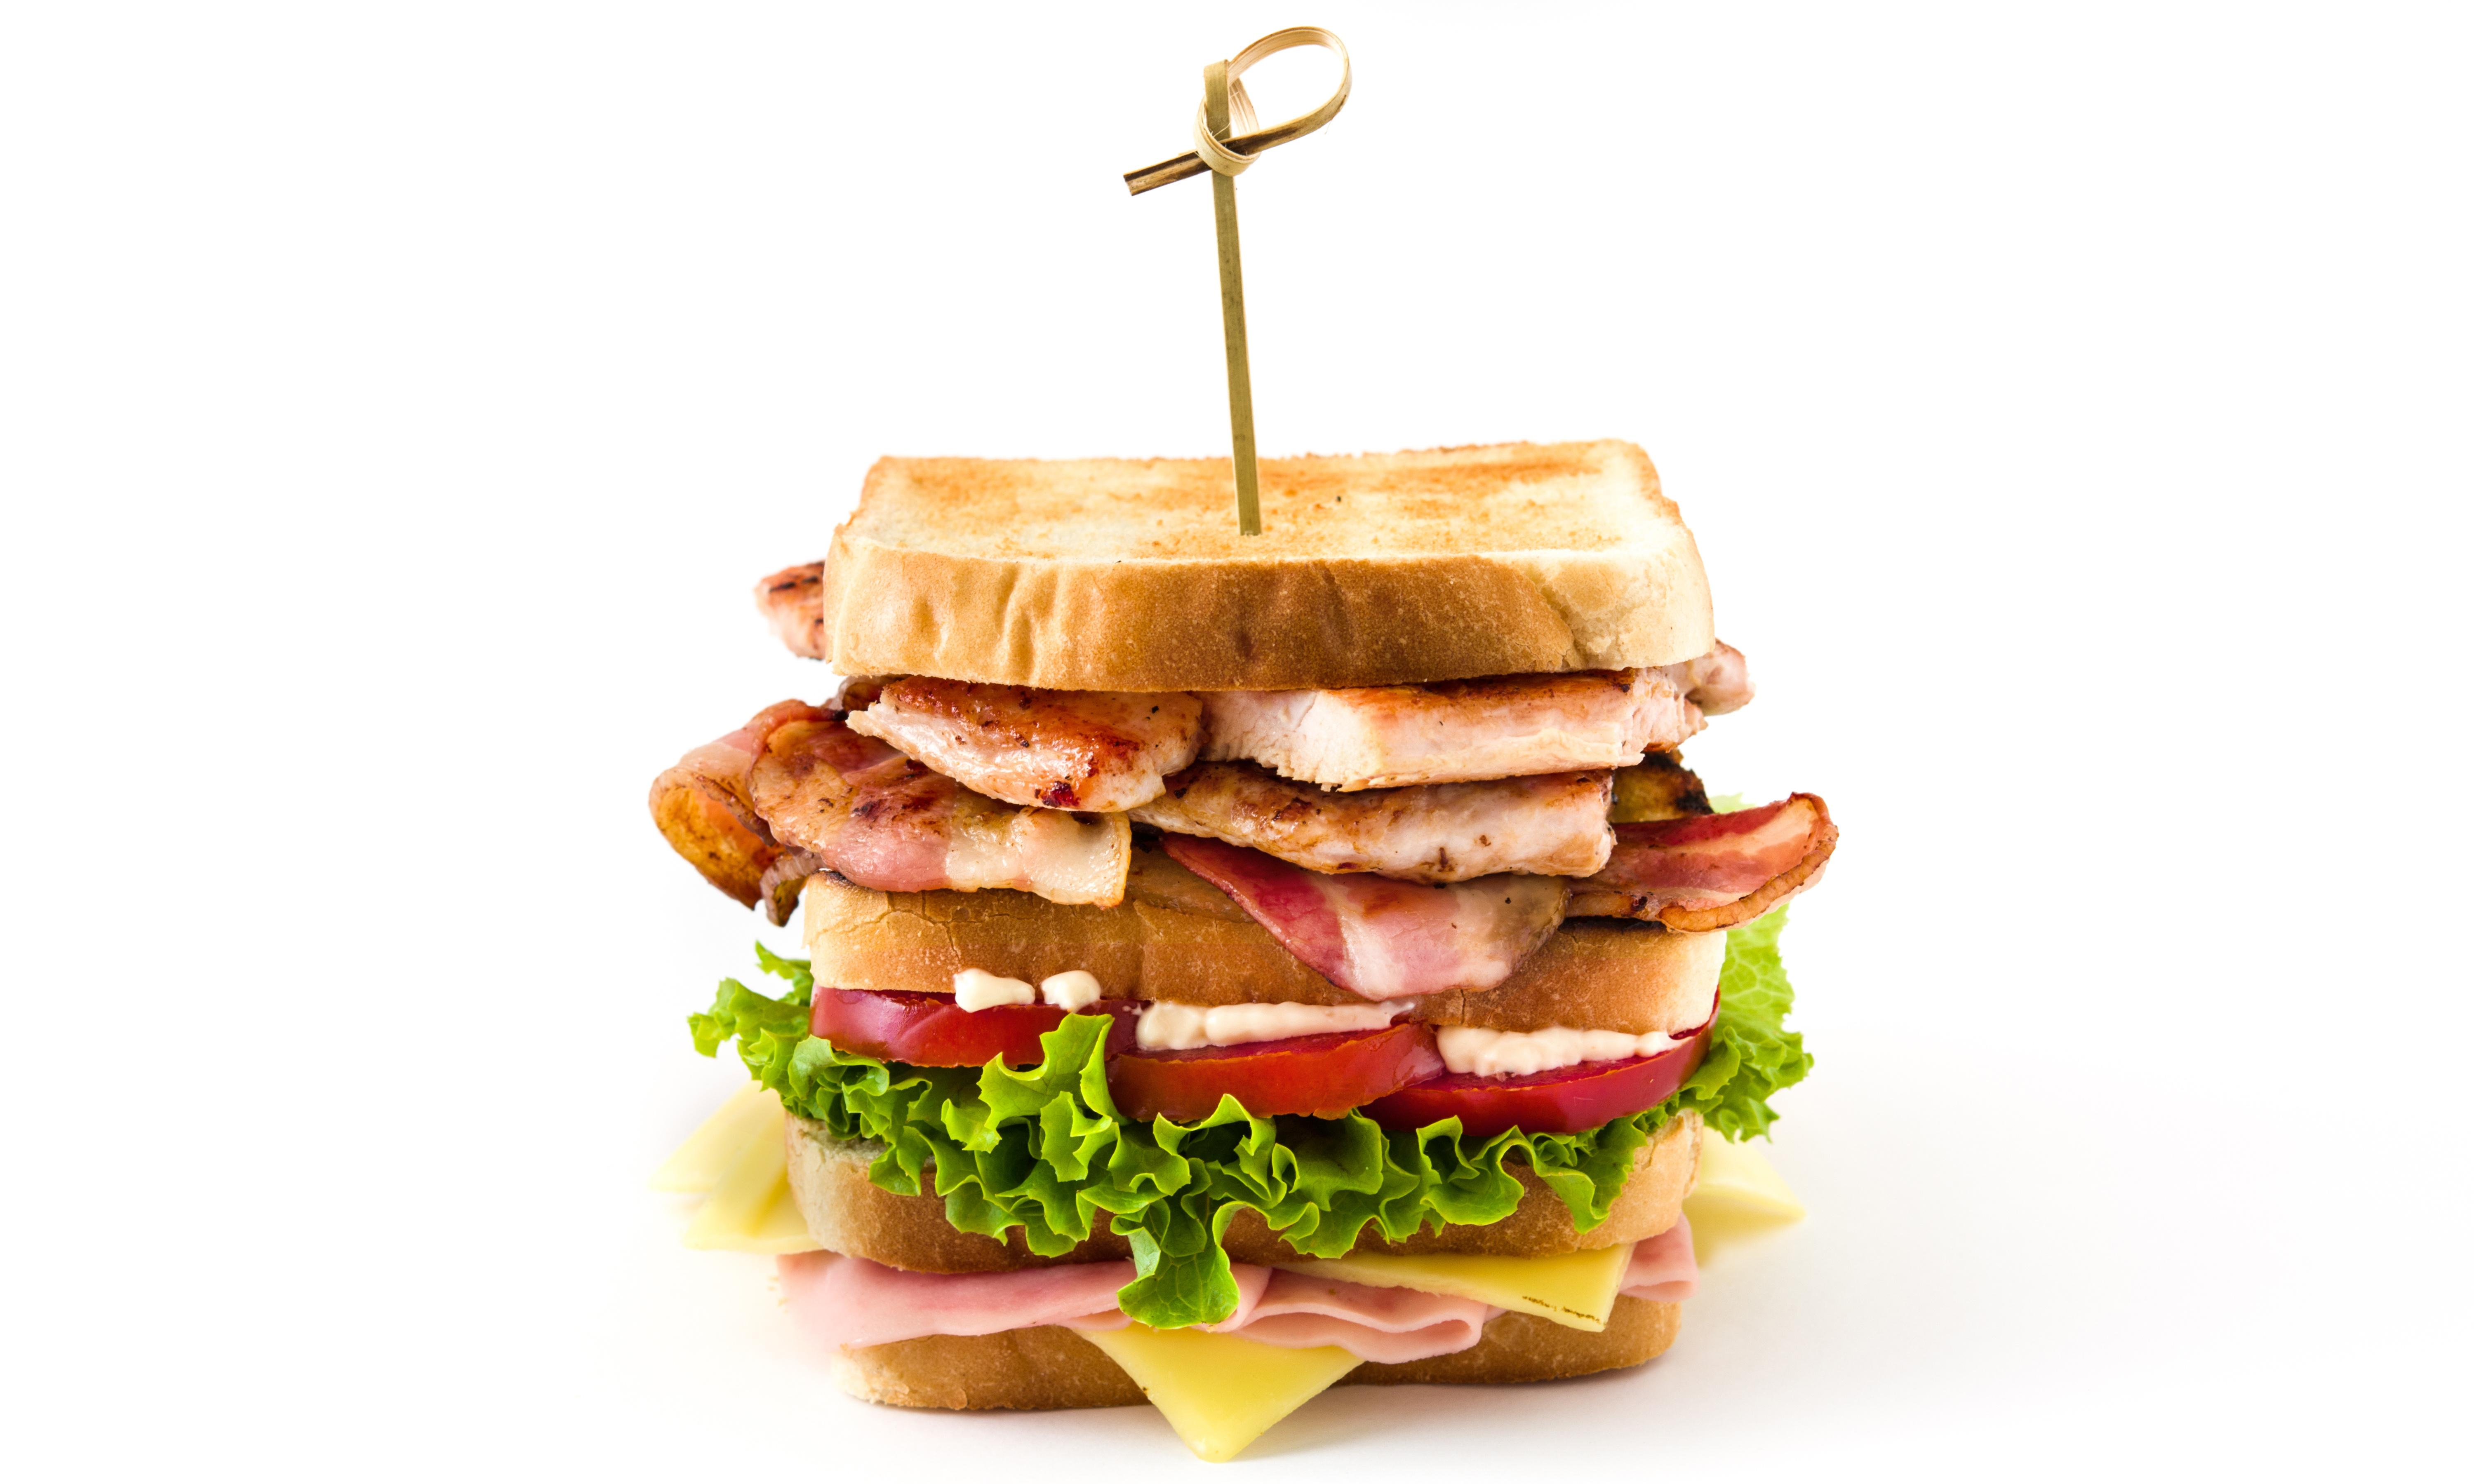 Can you solve it? The club sandwich problem